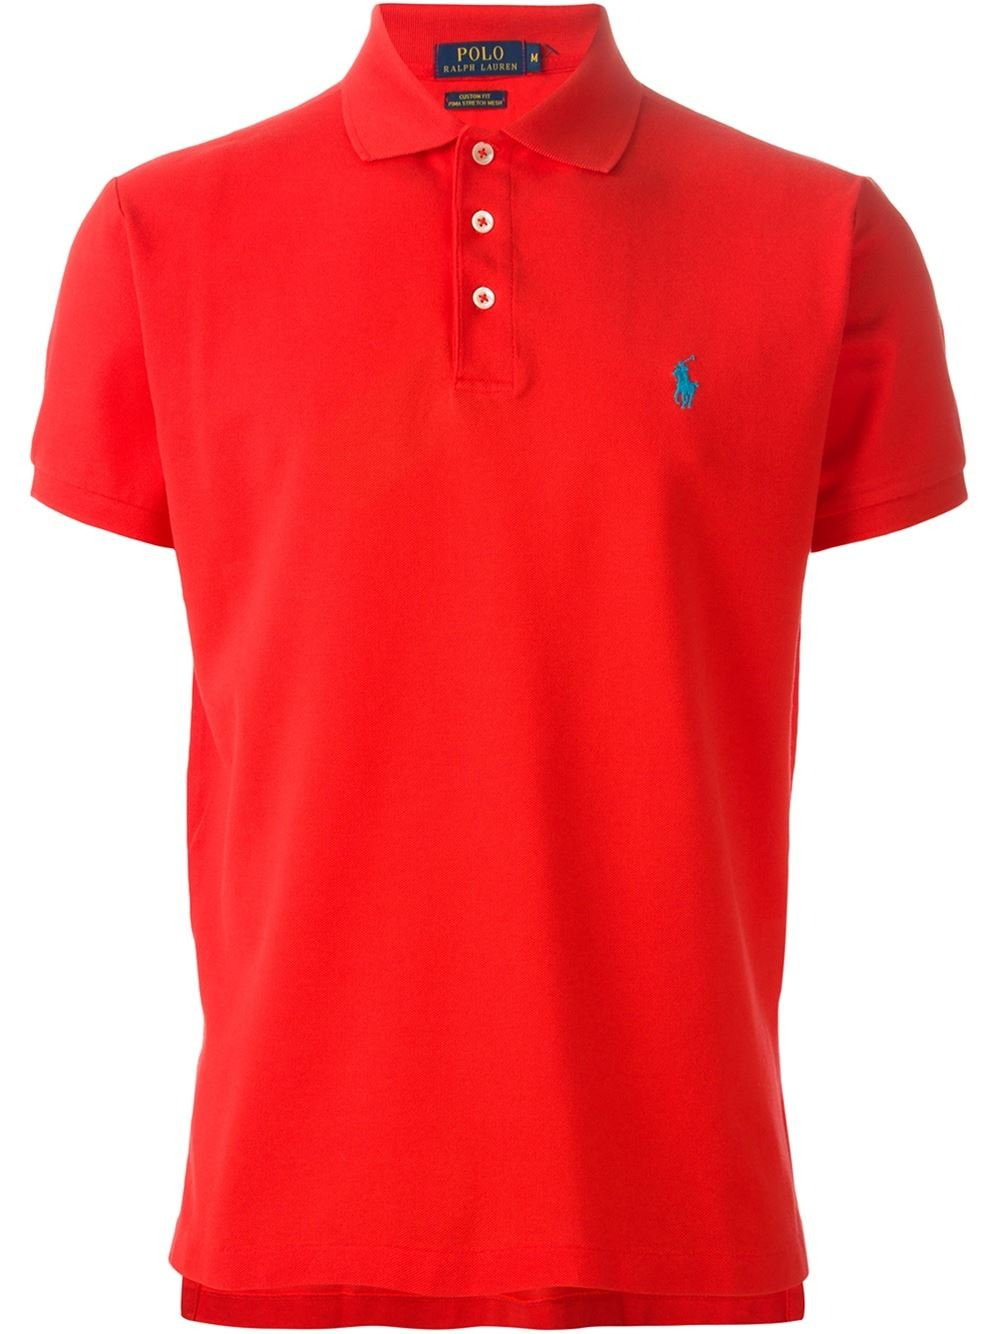 polo ralph lauren short sleeved polo shirt in red for men lyst. Black Bedroom Furniture Sets. Home Design Ideas